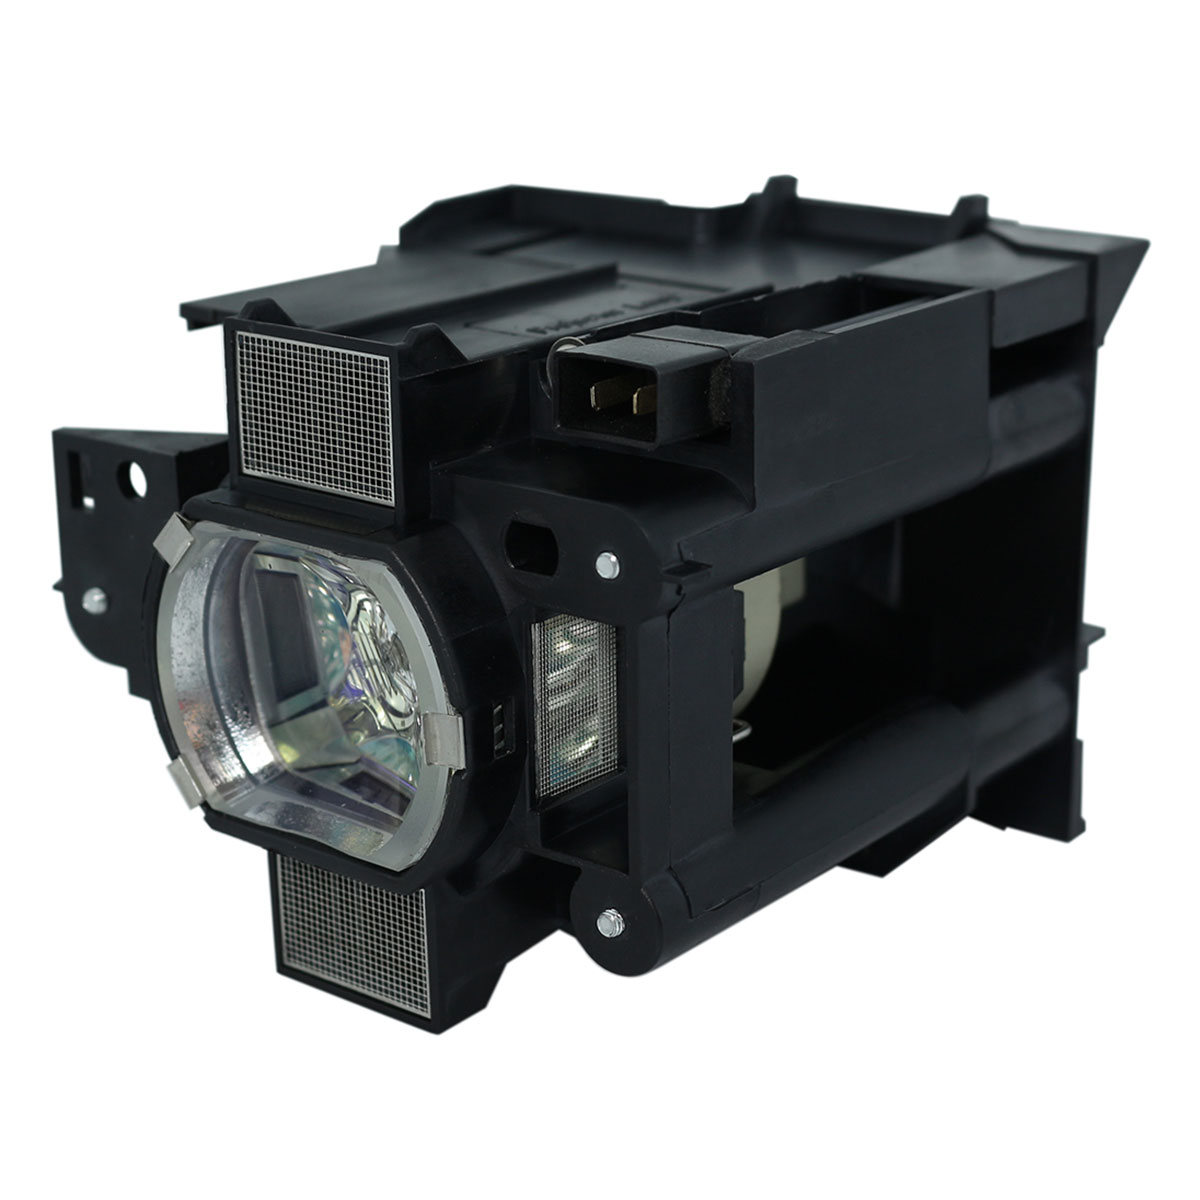 Lutema Platinum for Christie LW401 Projector Lamp with Housing (Original Philips Bulb Inside) - image 5 of 5